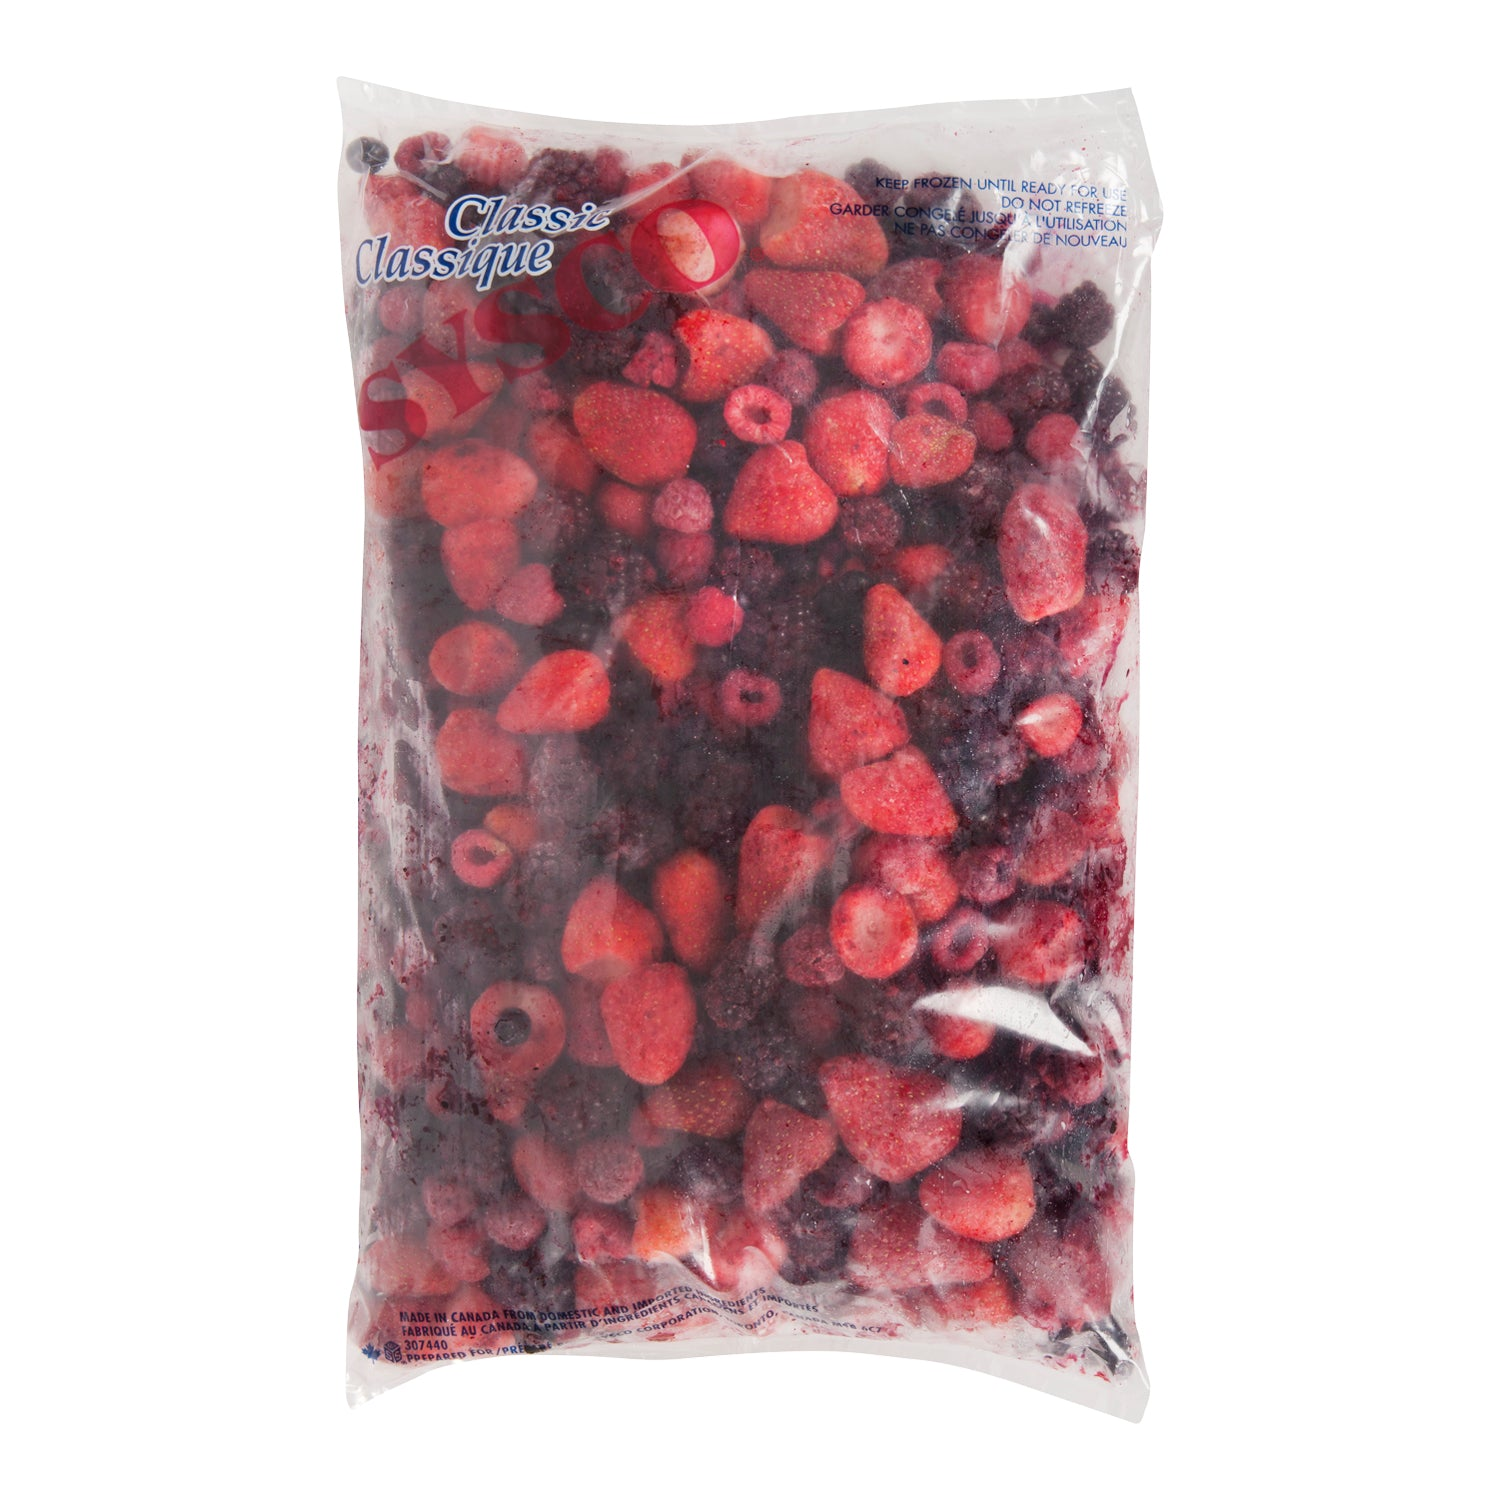 Sysco Classic Individually Quick Frozen Mixed Berry Blend - Blueberries/Blackberries/Strawberries/Raspberries 2.5 kg - 2 Pack [$7.20/kg]